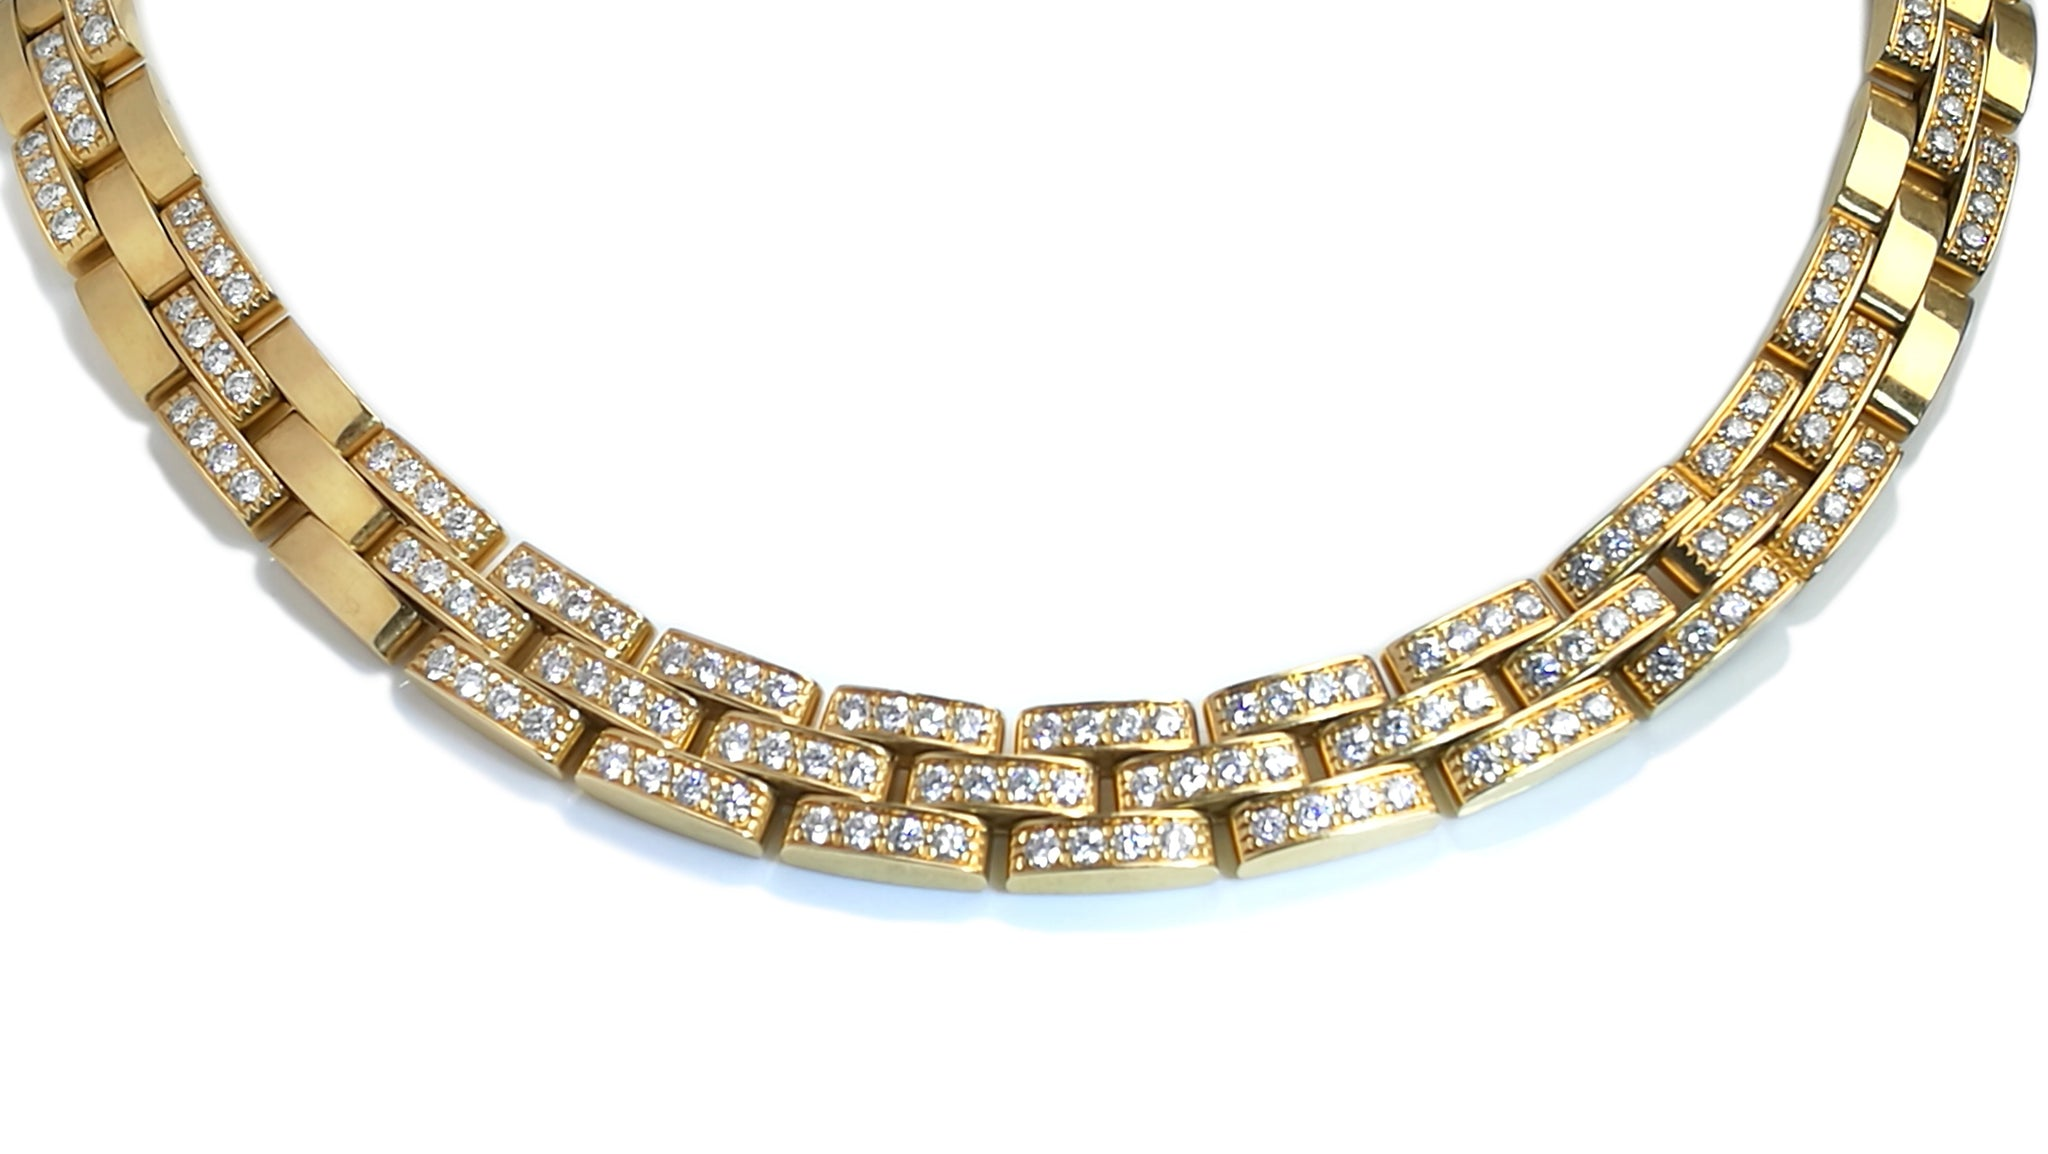 Cartier 6.0ct Maillon Panthere Diamond & 18k Yellow Gold Necklace, 16inch